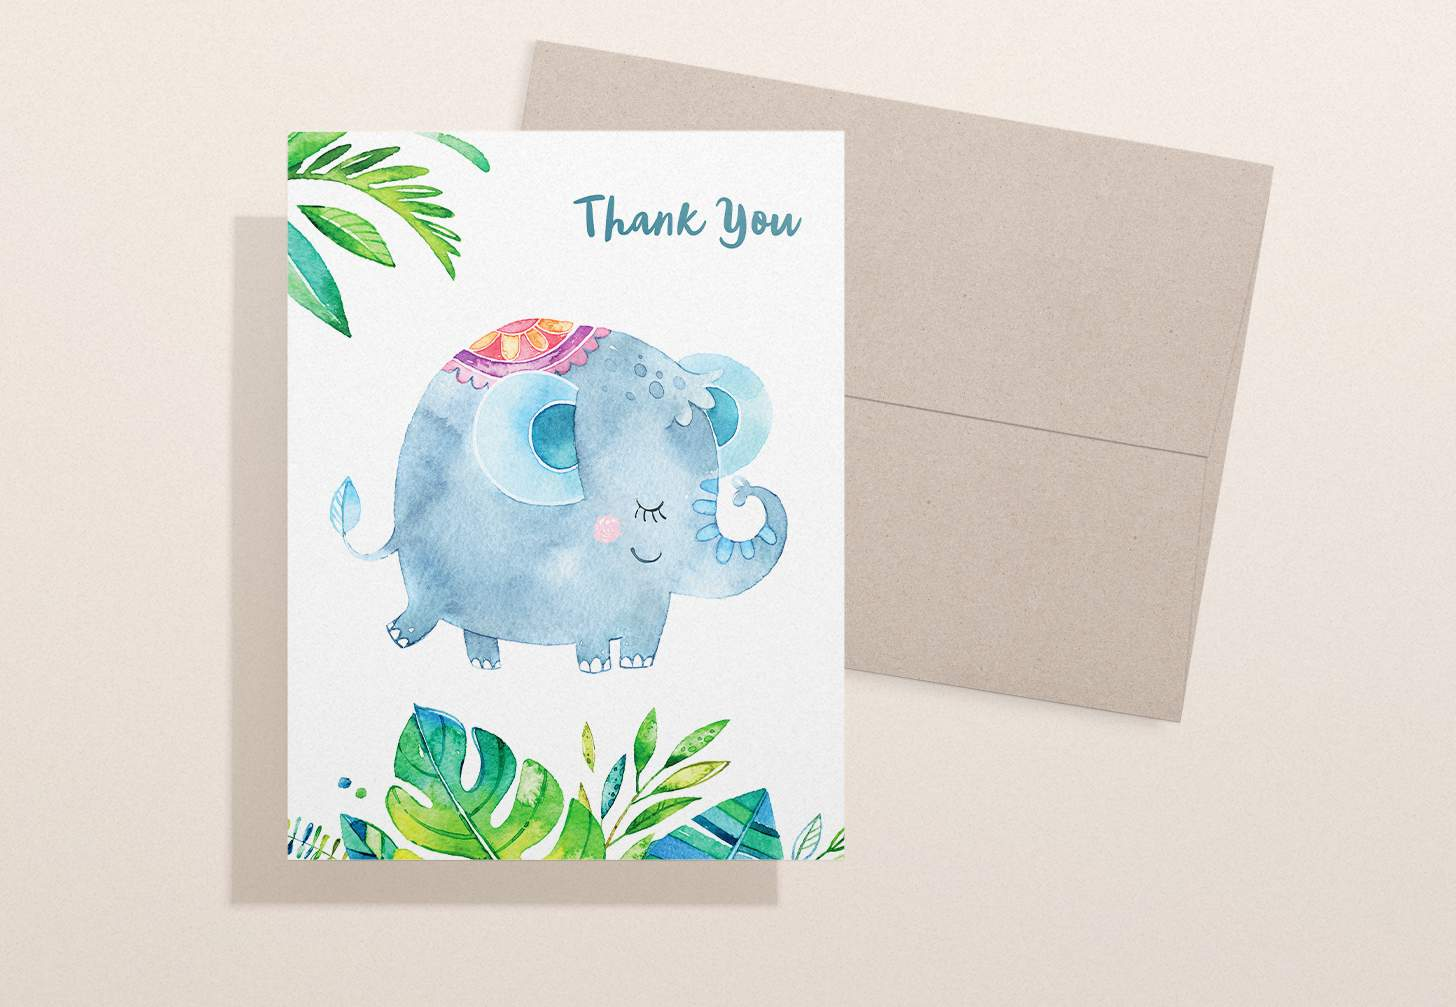 Blue elephant with green leaves design and a brown envelope